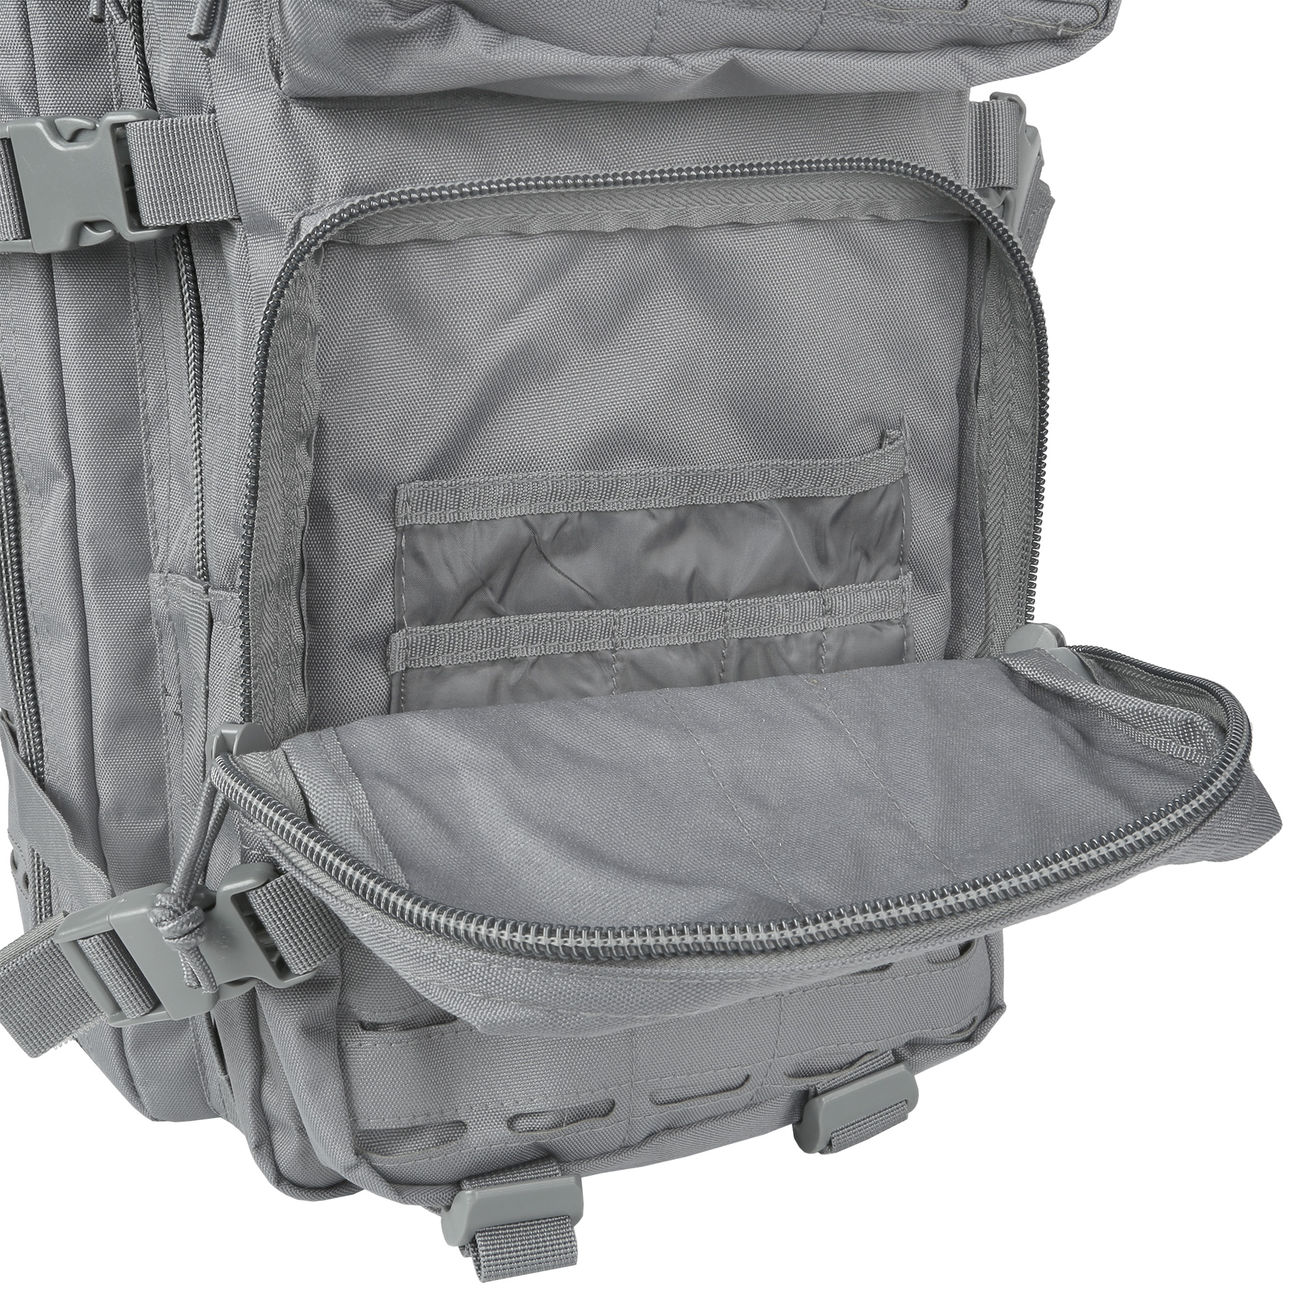 Mil-Tec Rucksack US Assault Pack Laser Cut large 36L Urban grey 11